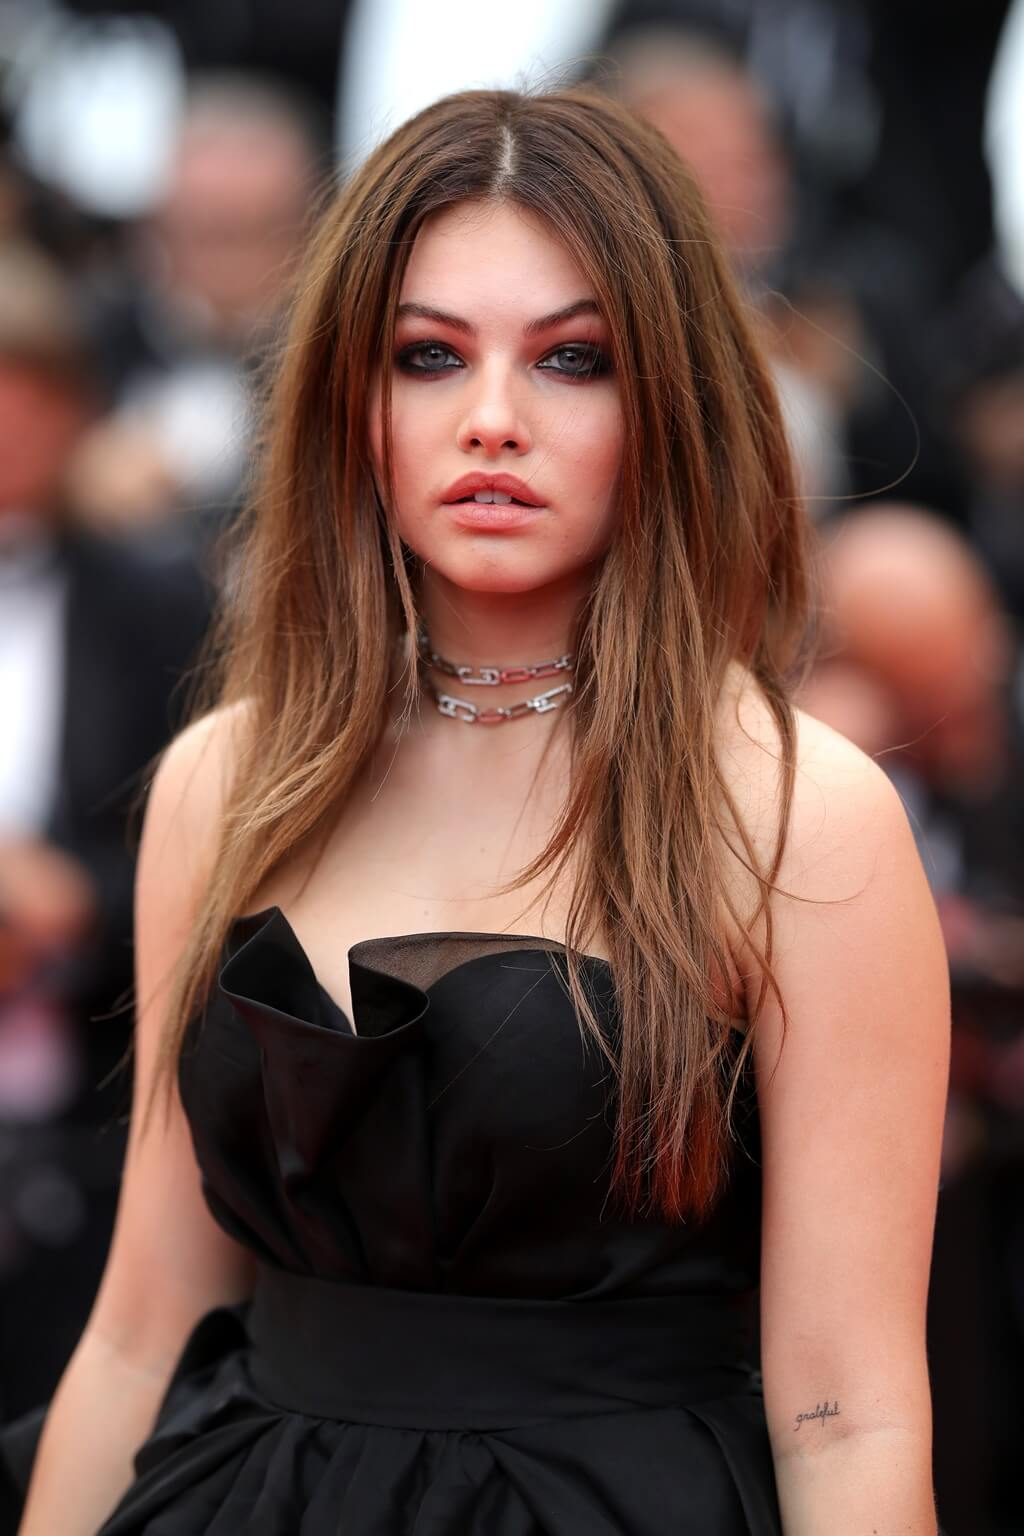 Thylane Blondeau instagram hot photos latest bikini pics